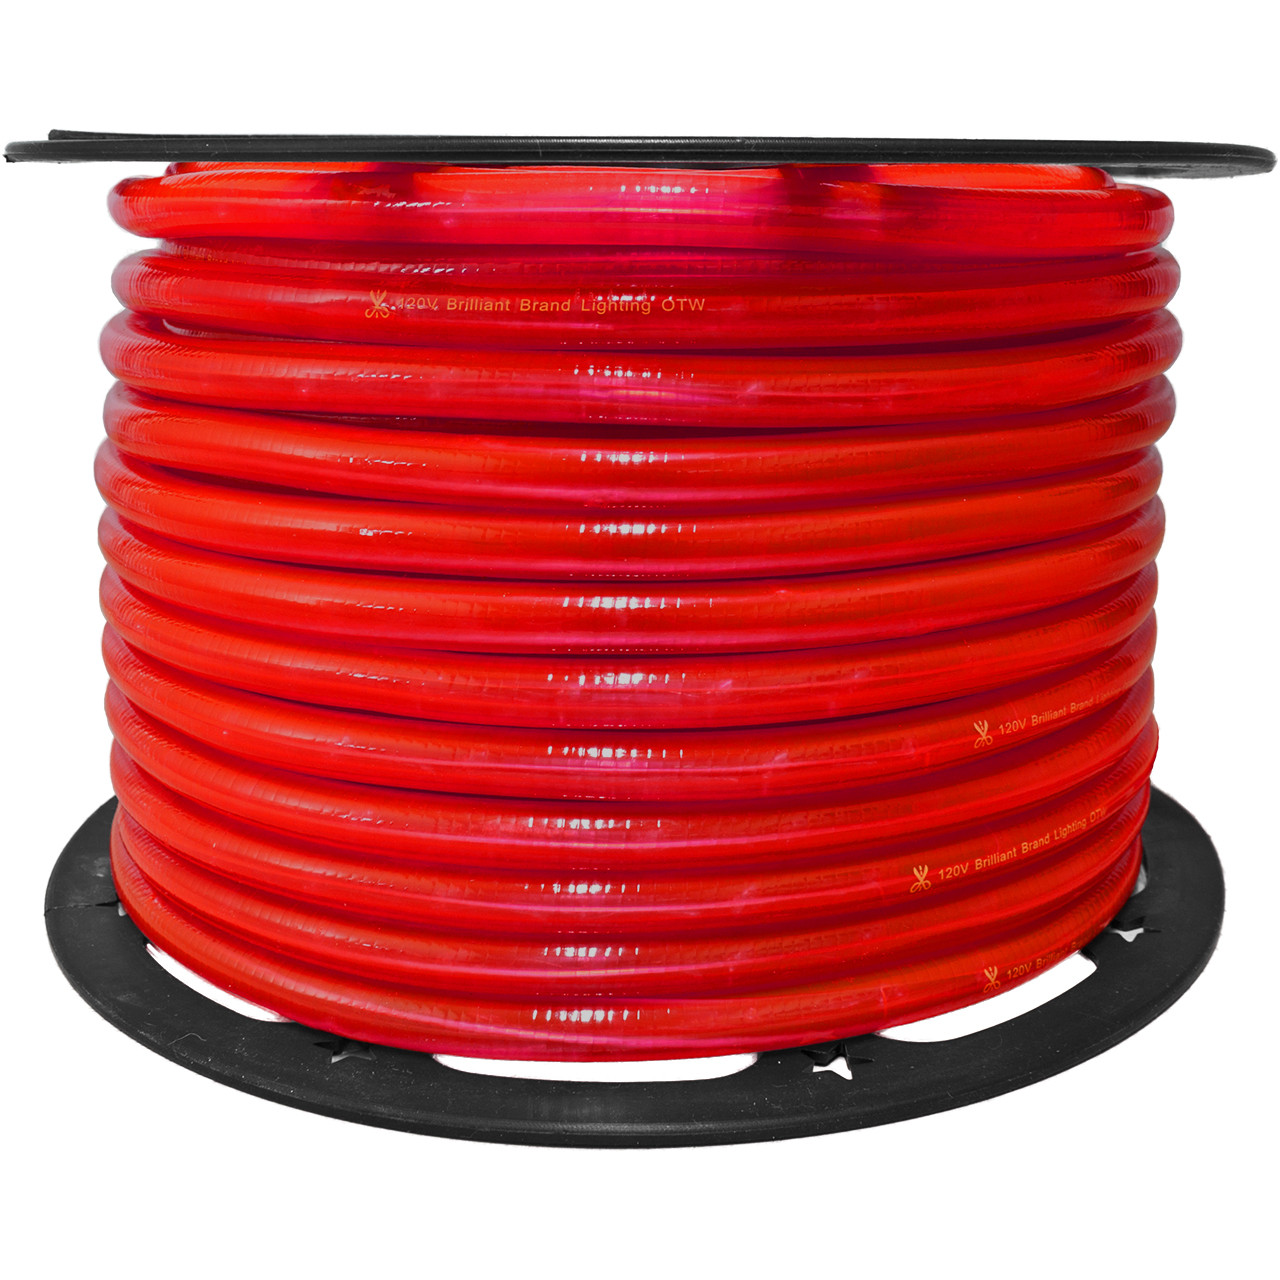 Red incandescent rope light 120 volt 12 inch 150 feet red incandescent rope light 120 volt 12 inch 150 feet aloadofball Choice Image